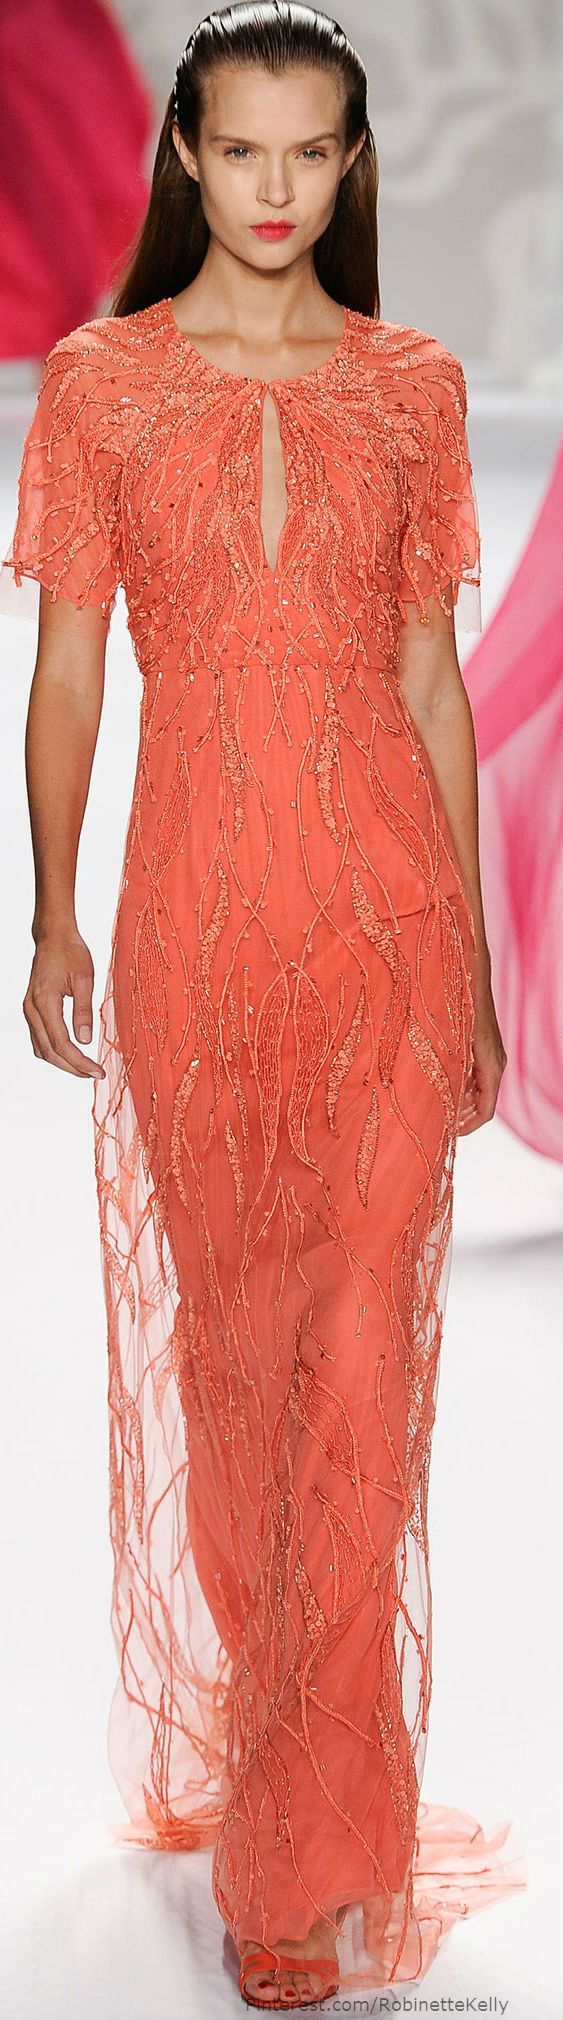 Monique Lhuillier | S/S 14, floor length coral gown, short sleeve w/ keyhole opening, beaded plumes entire length.